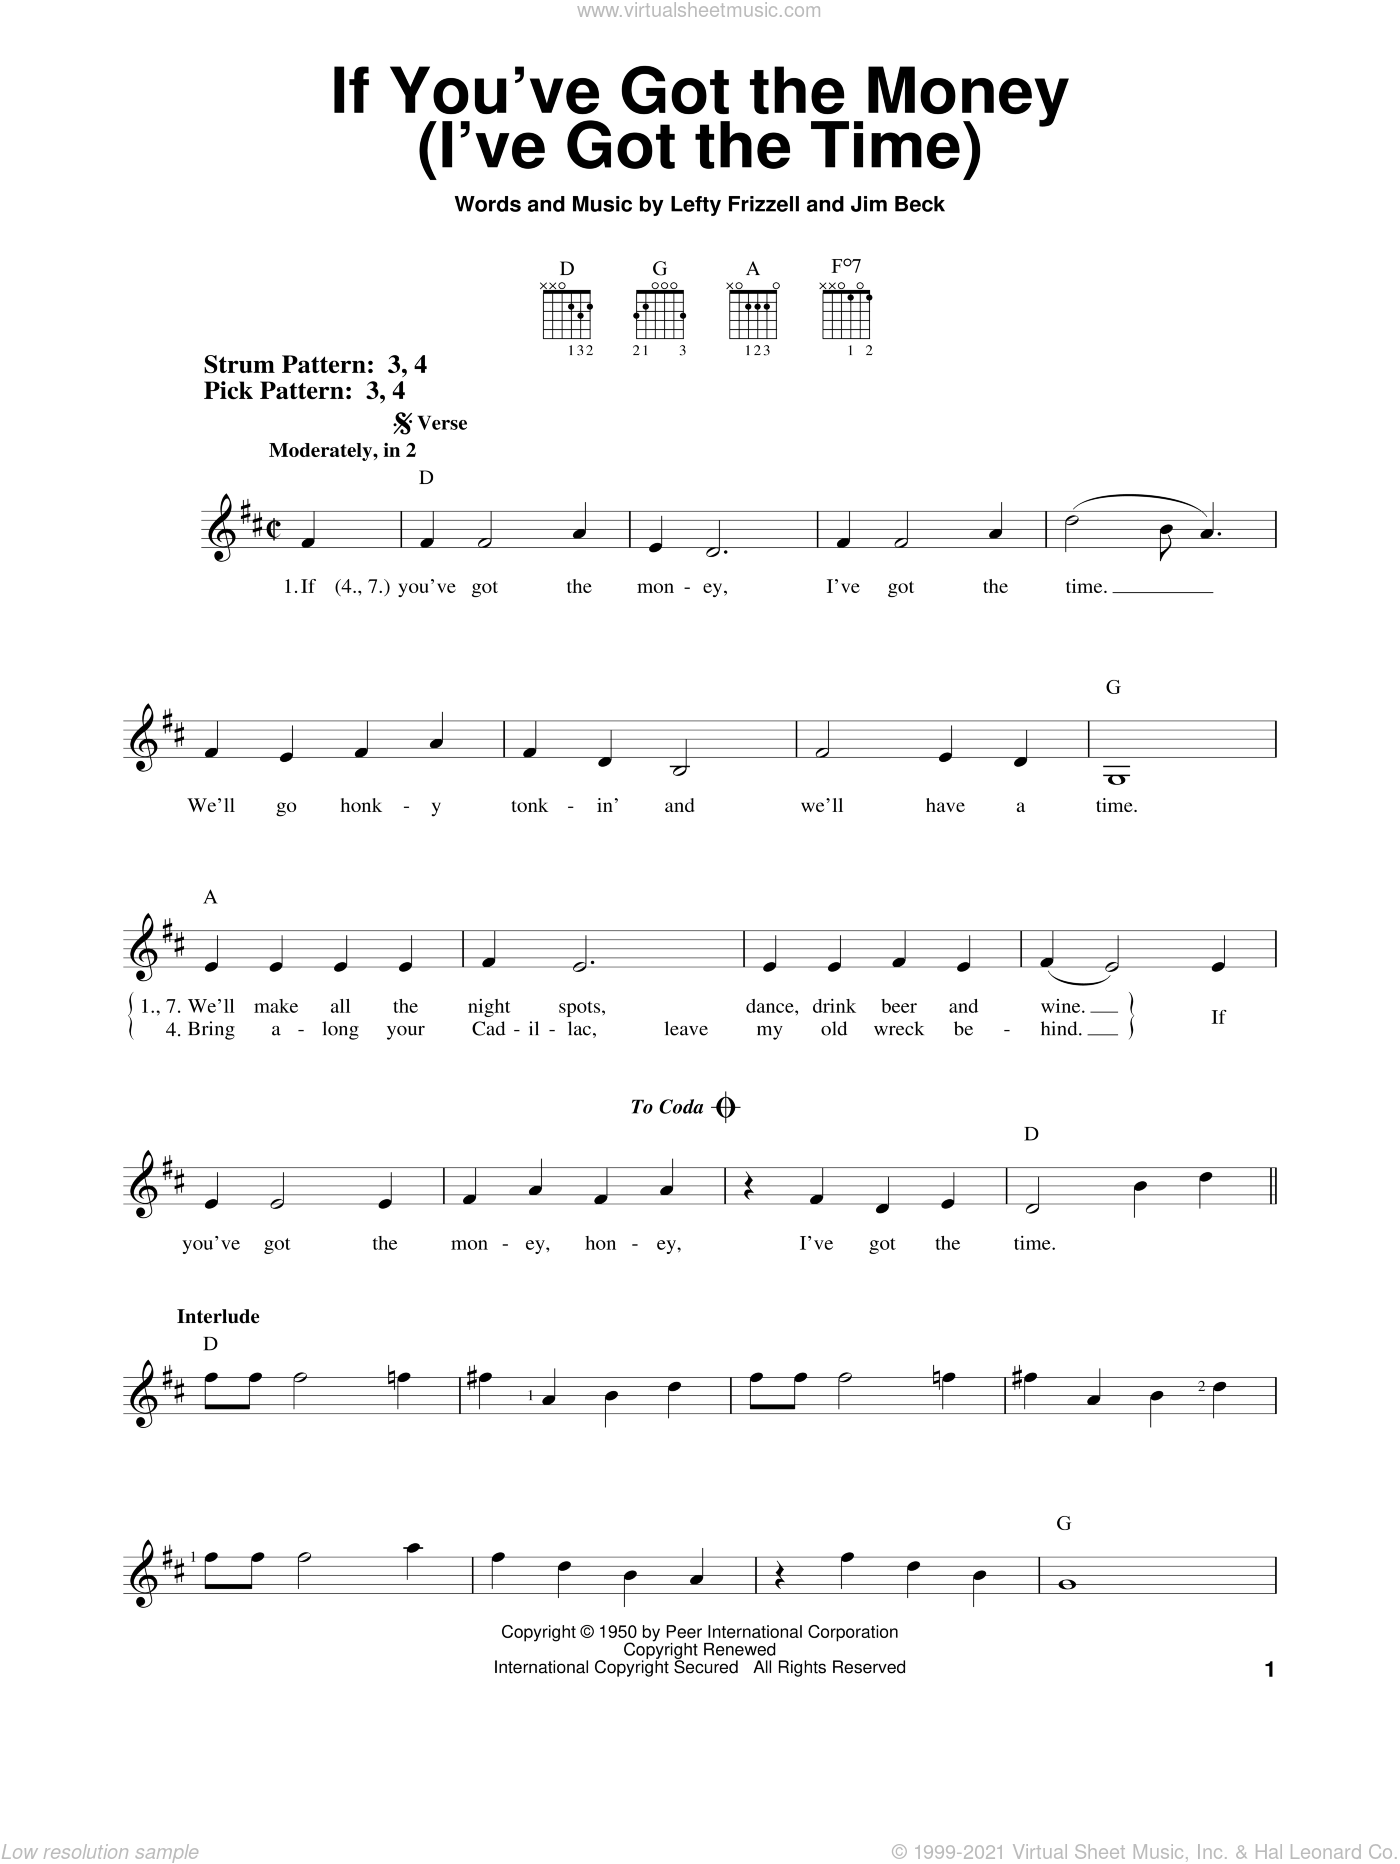 If You've Got The Money (I've Got The Time) sheet music for guitar solo (chords) by Jim Beck